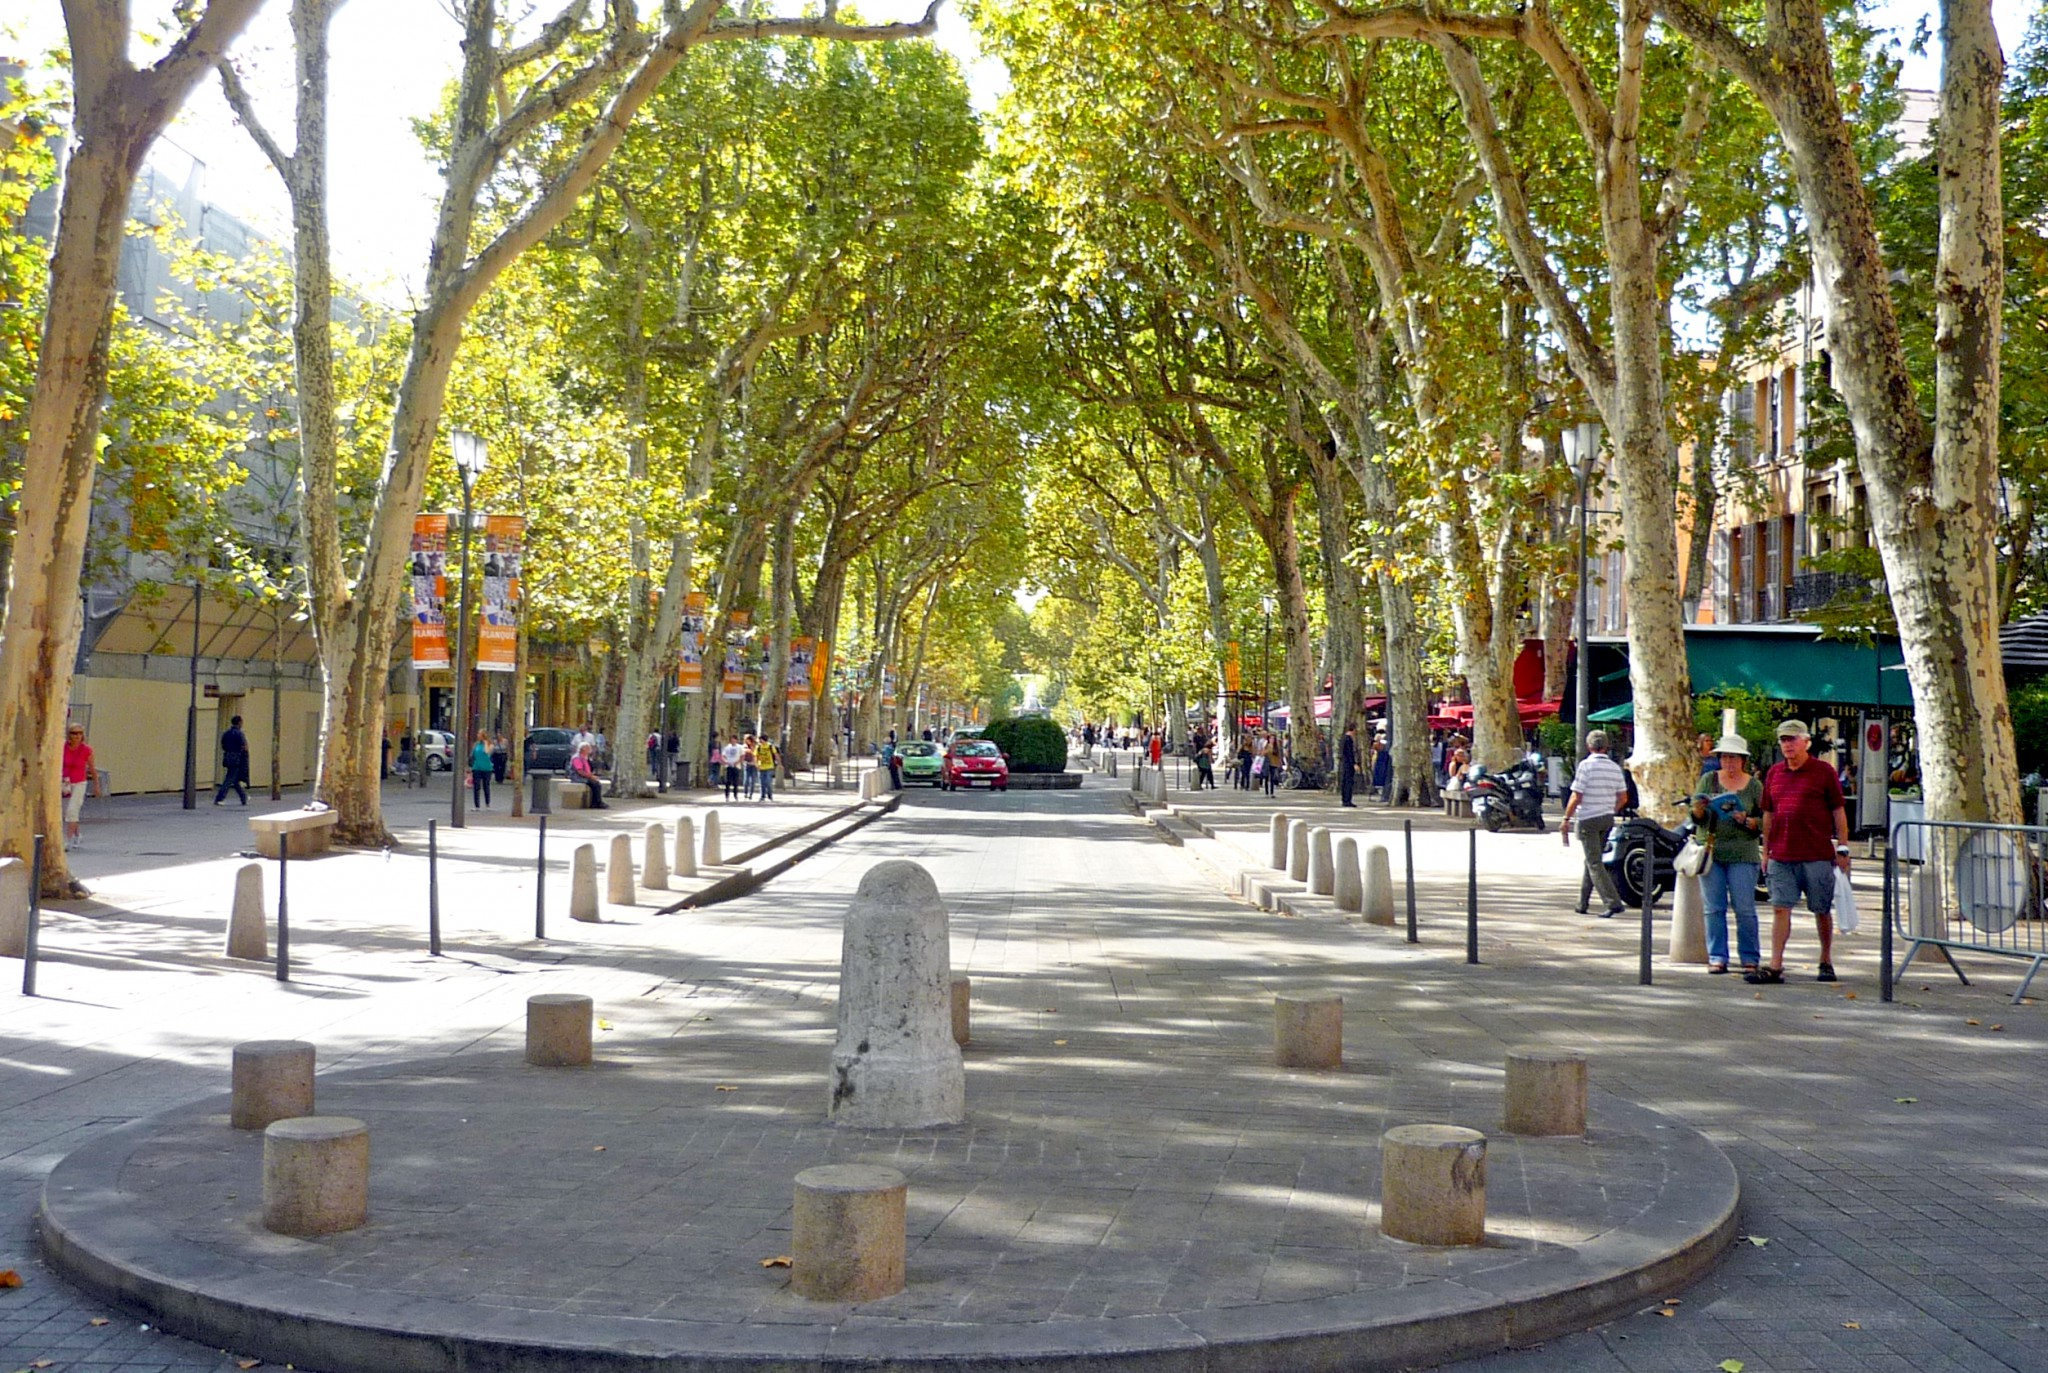 cours mirabeau aix en provence french moments